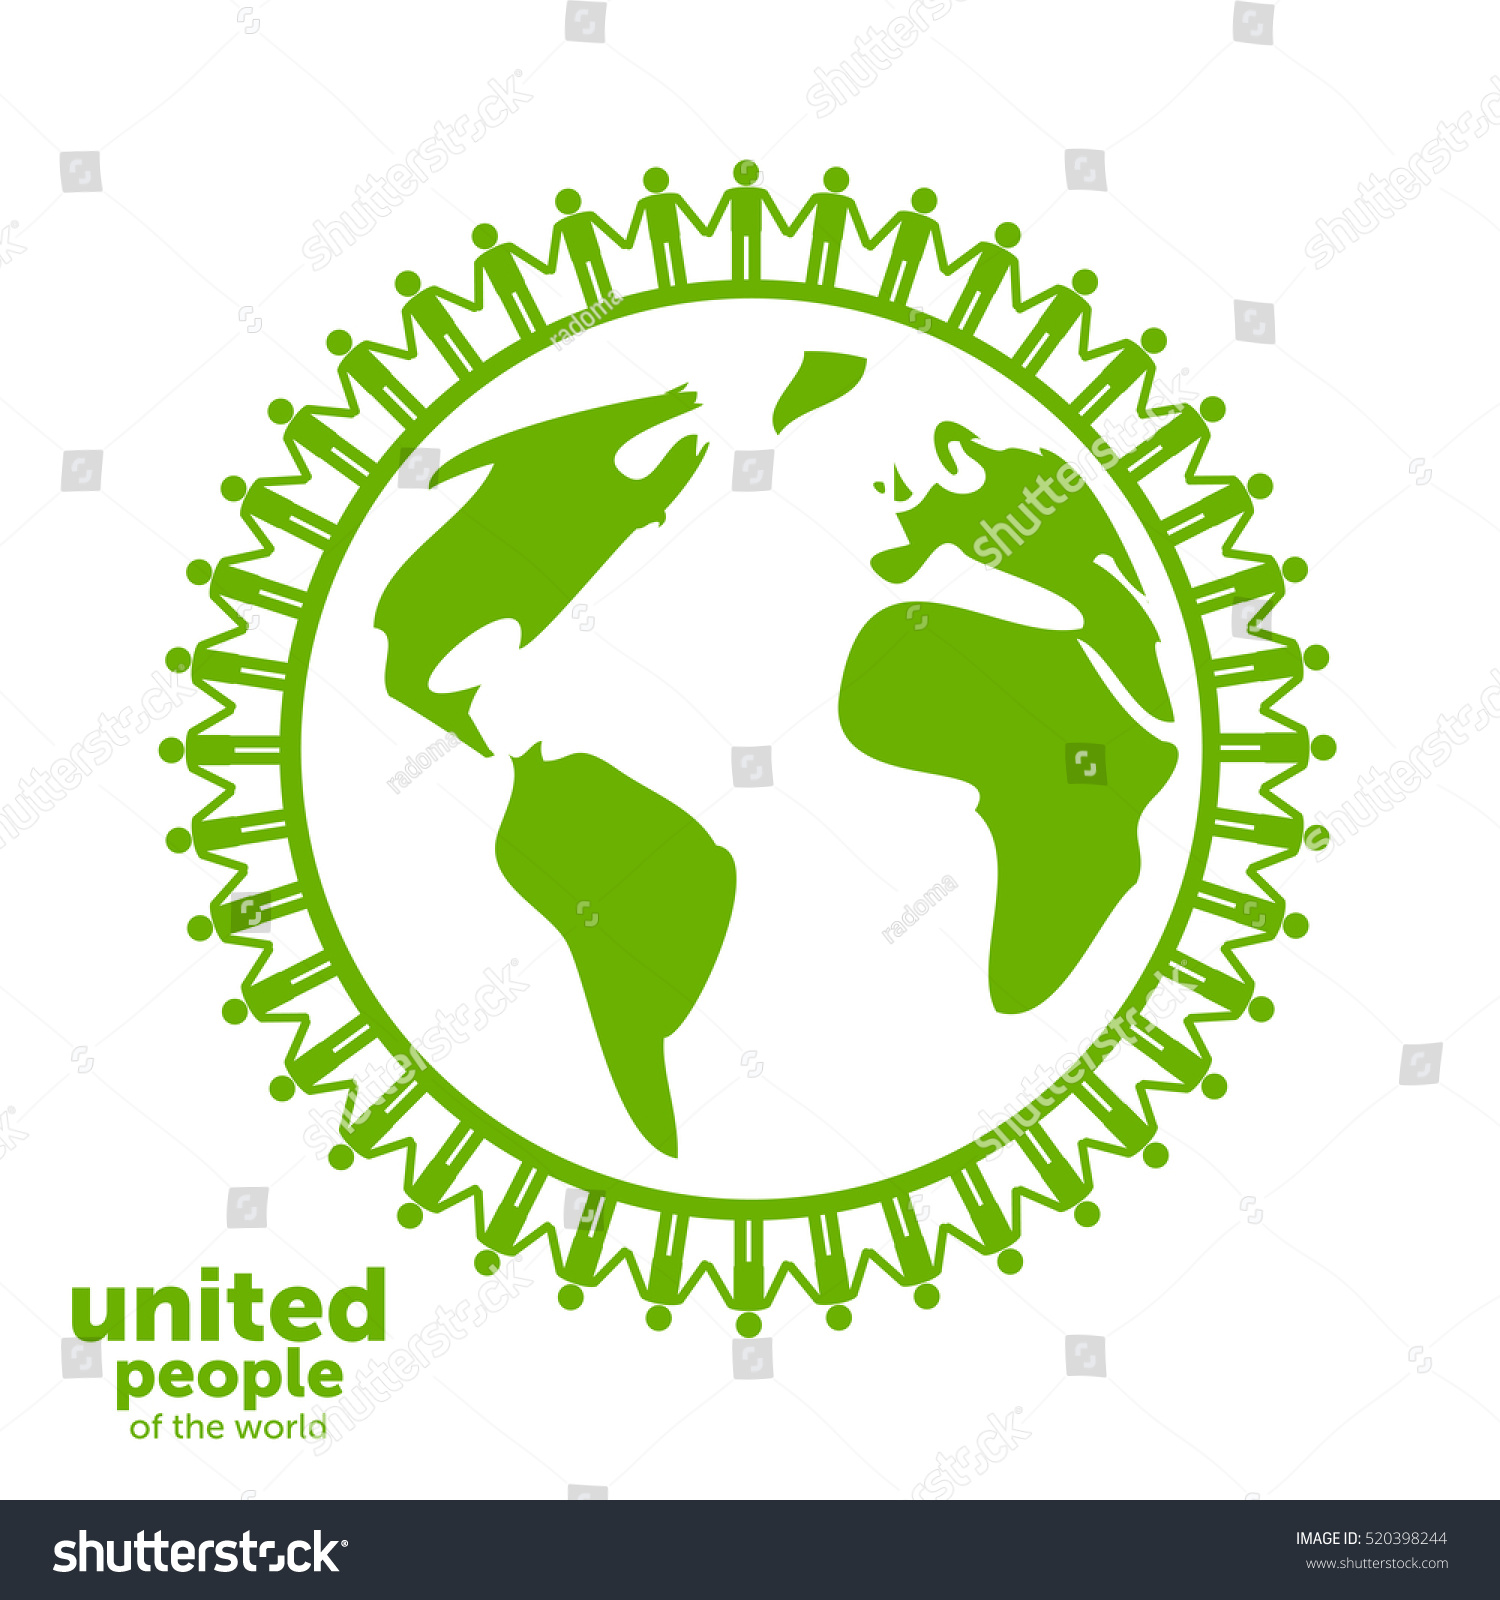 abstract unity symbol united people world stock vector